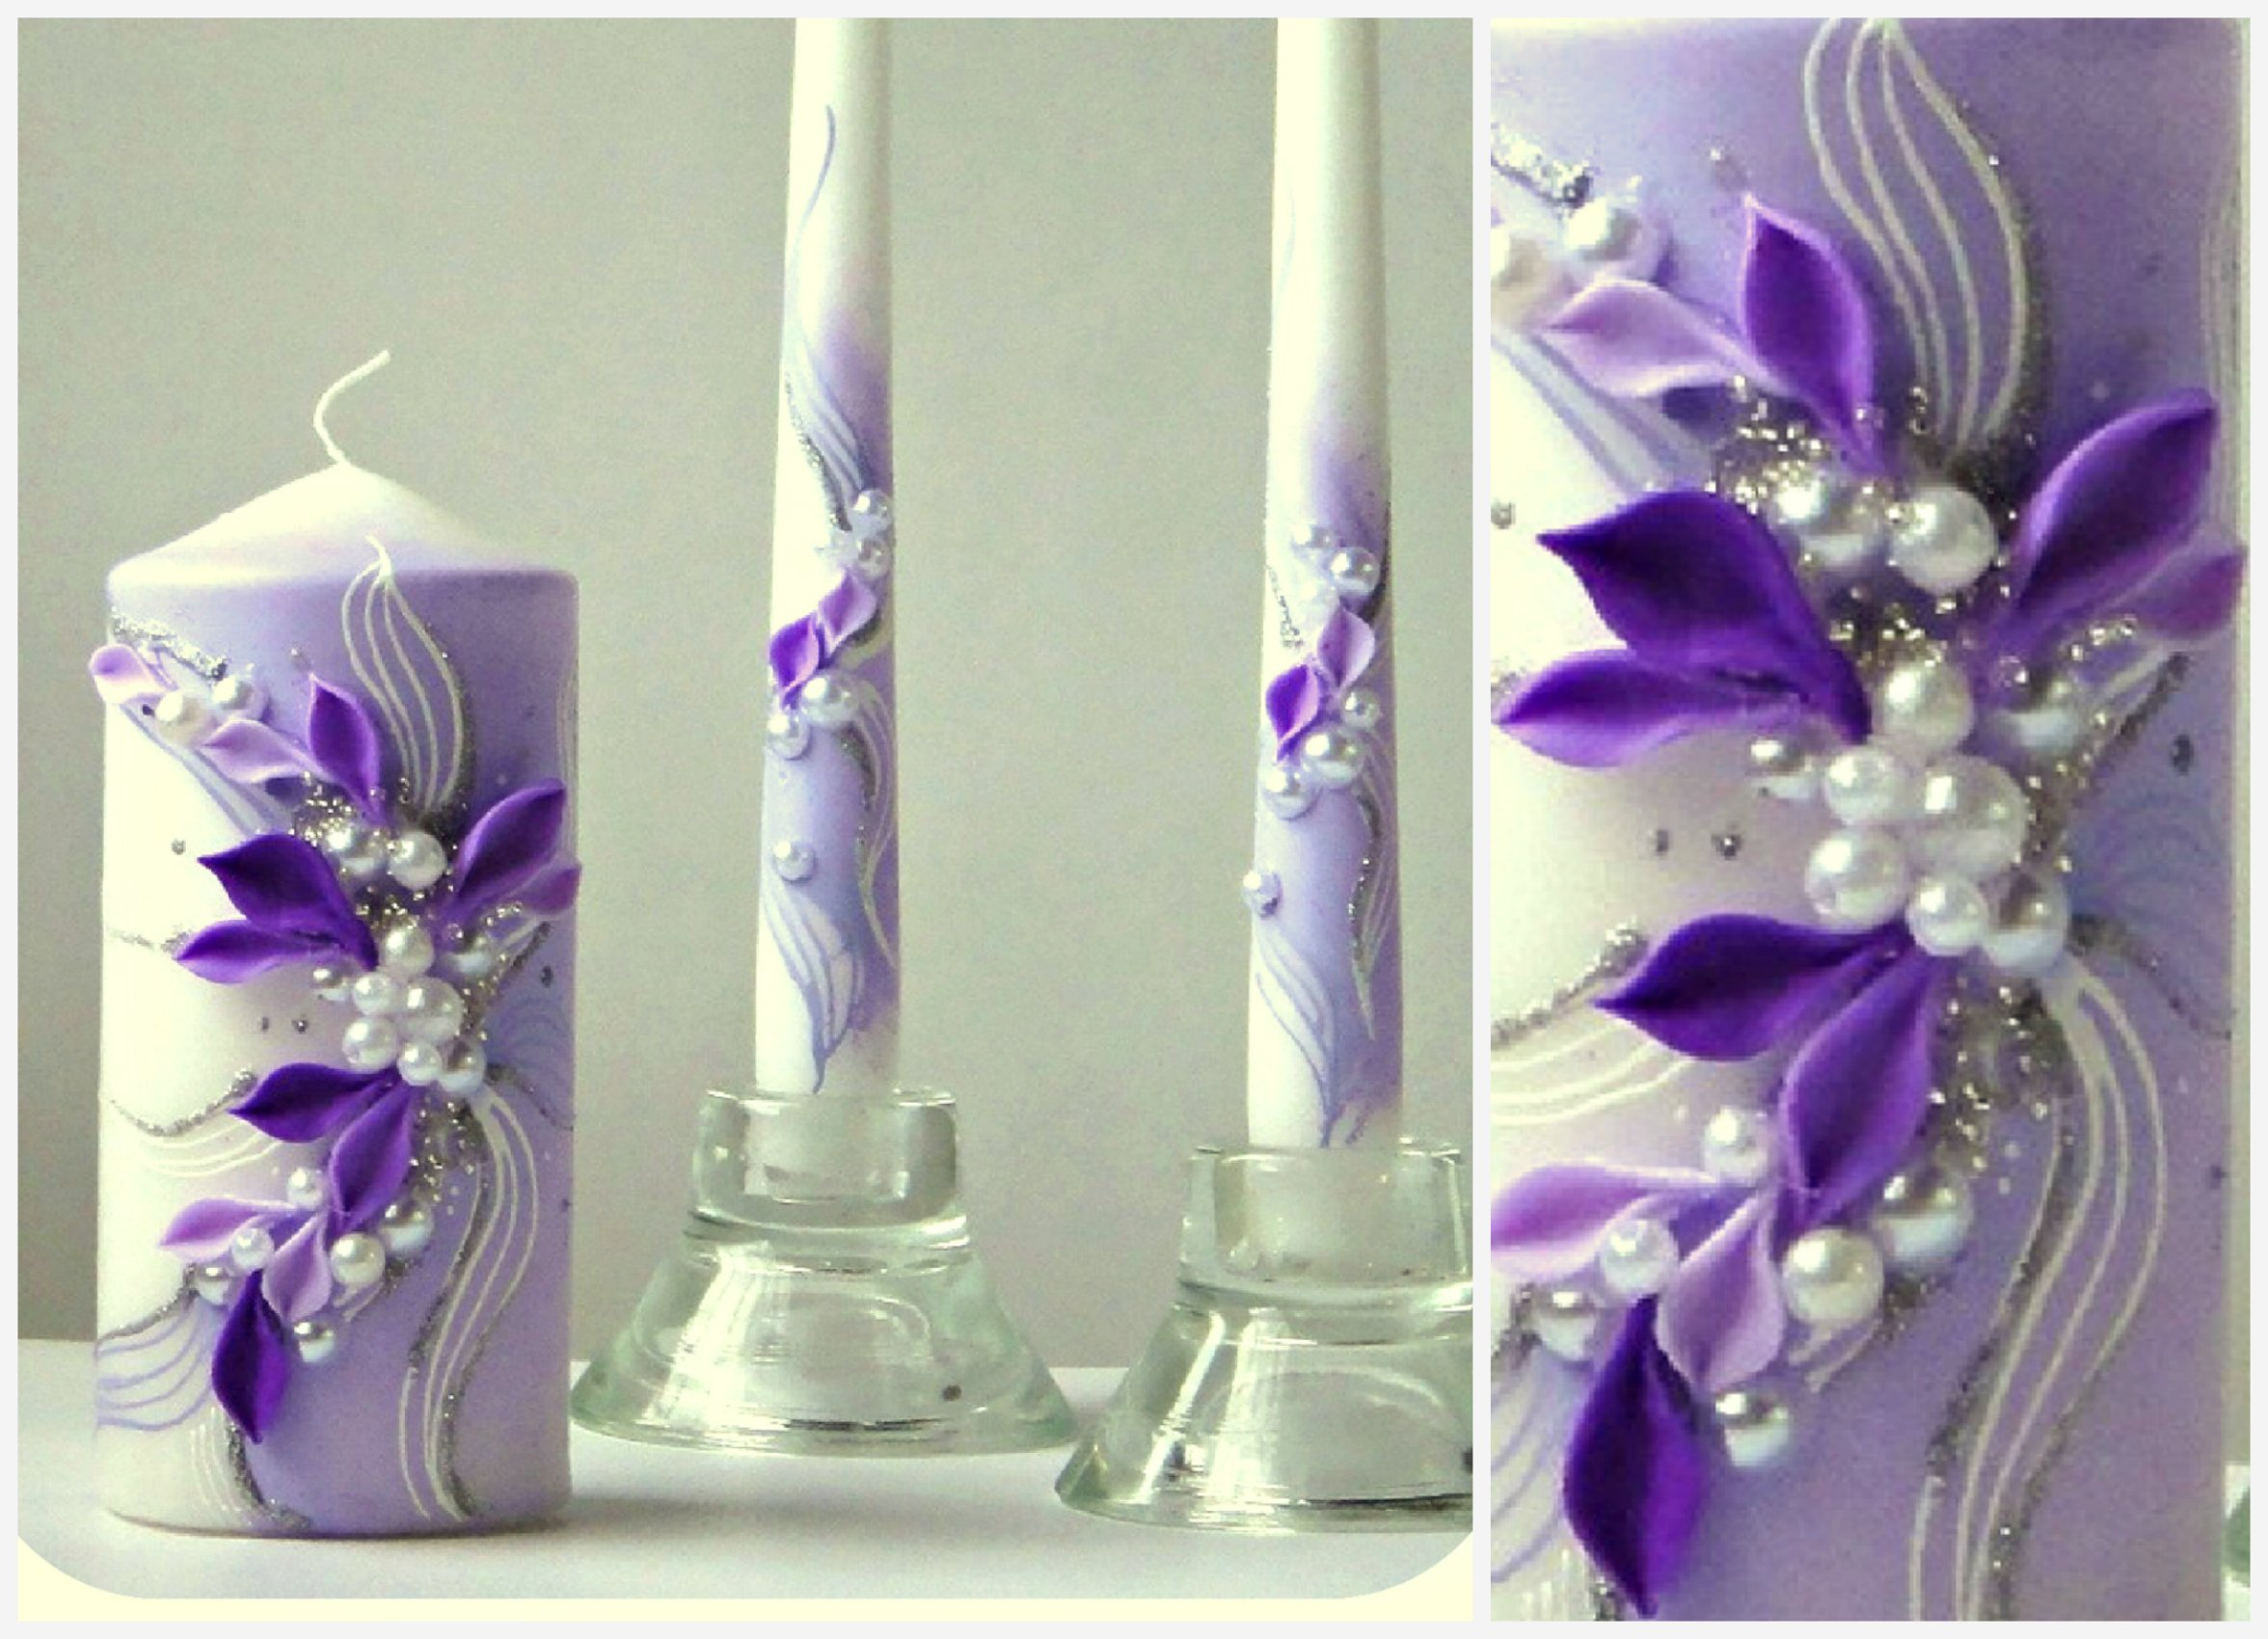 Magik Life Unity Candle Set |Decorations for Wedding |Outdoor |Bar |Restaurant |Party Home| Birthday |Wedding Settings |Ceremony Ideas Party (Violet with Flowers) by Magik Life